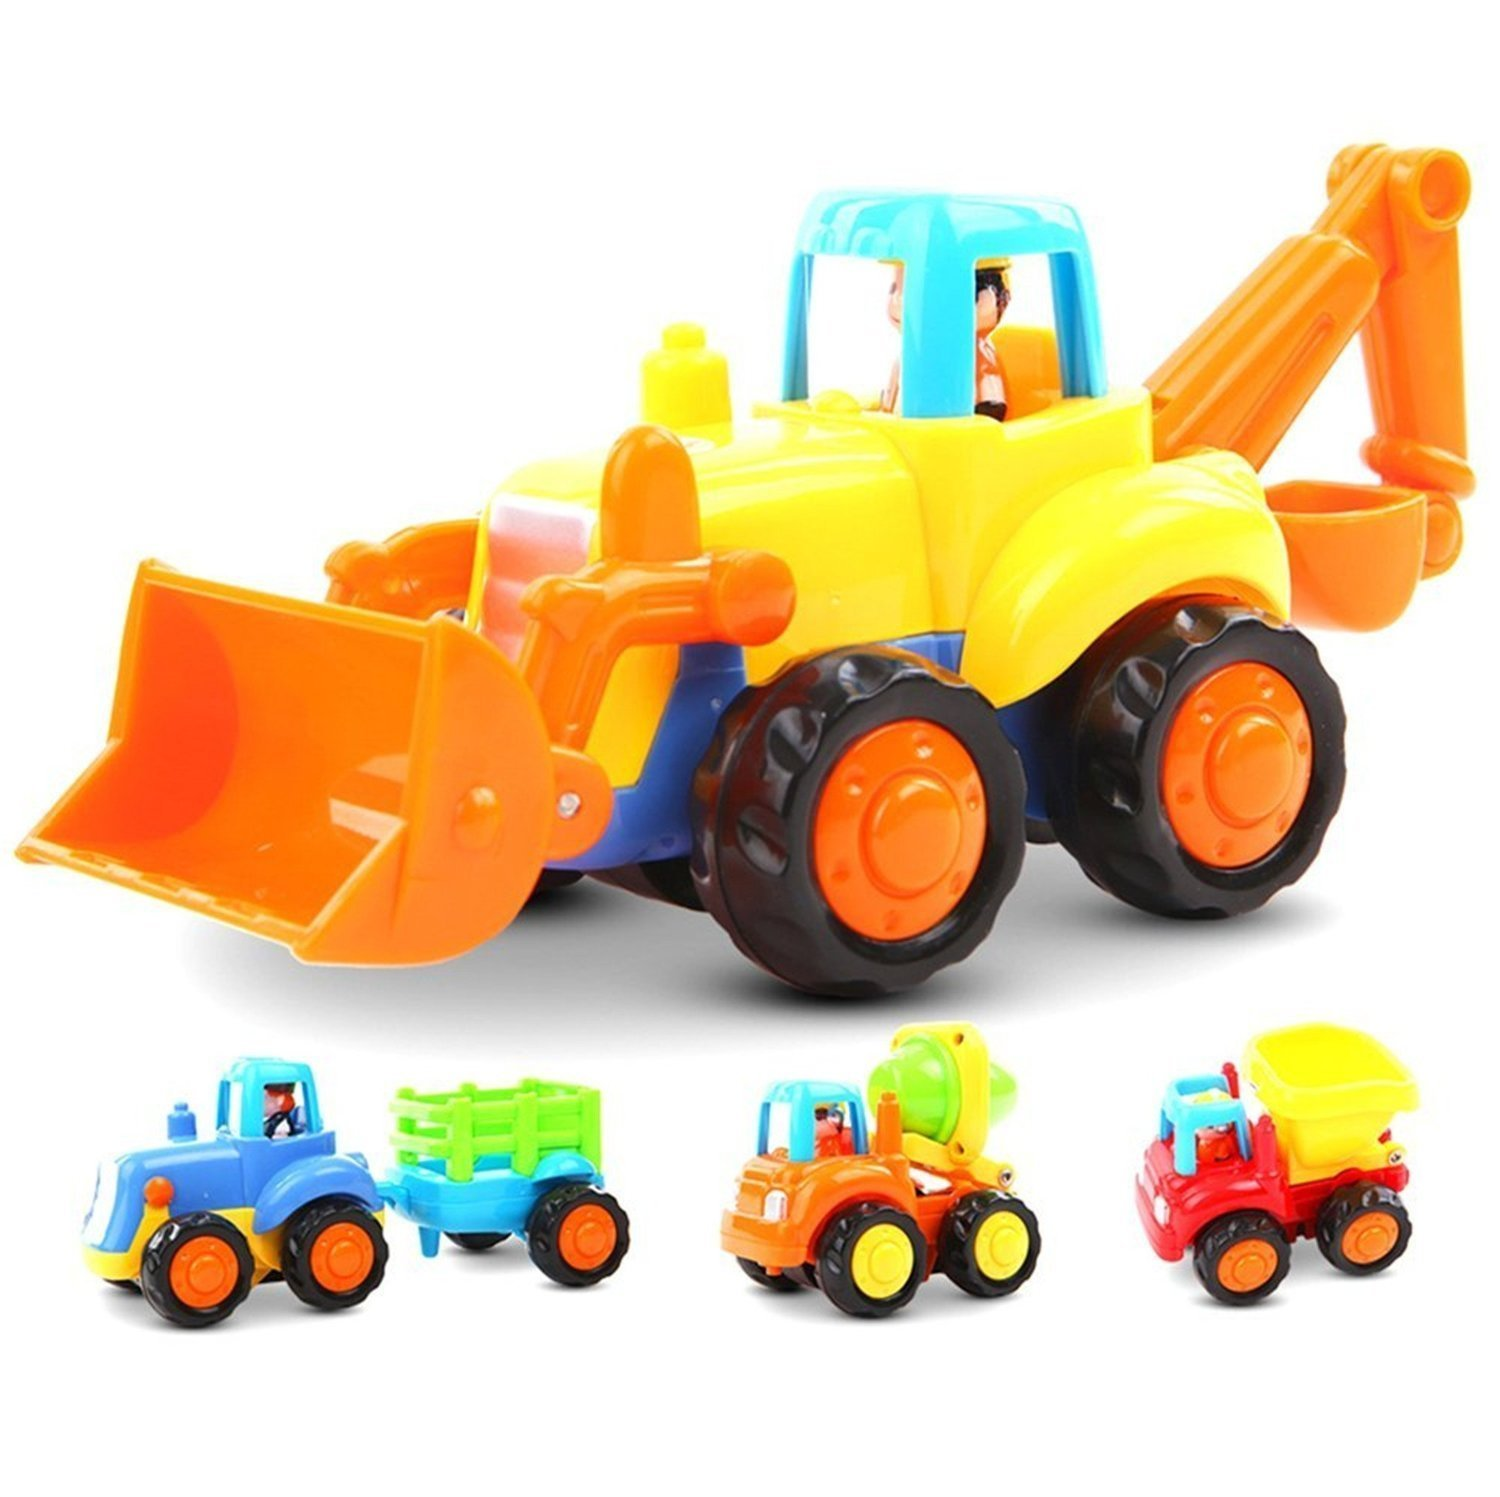 Top 40 Best Toys & Gifts Ideas for 1 Year Old Boys & Girls 16